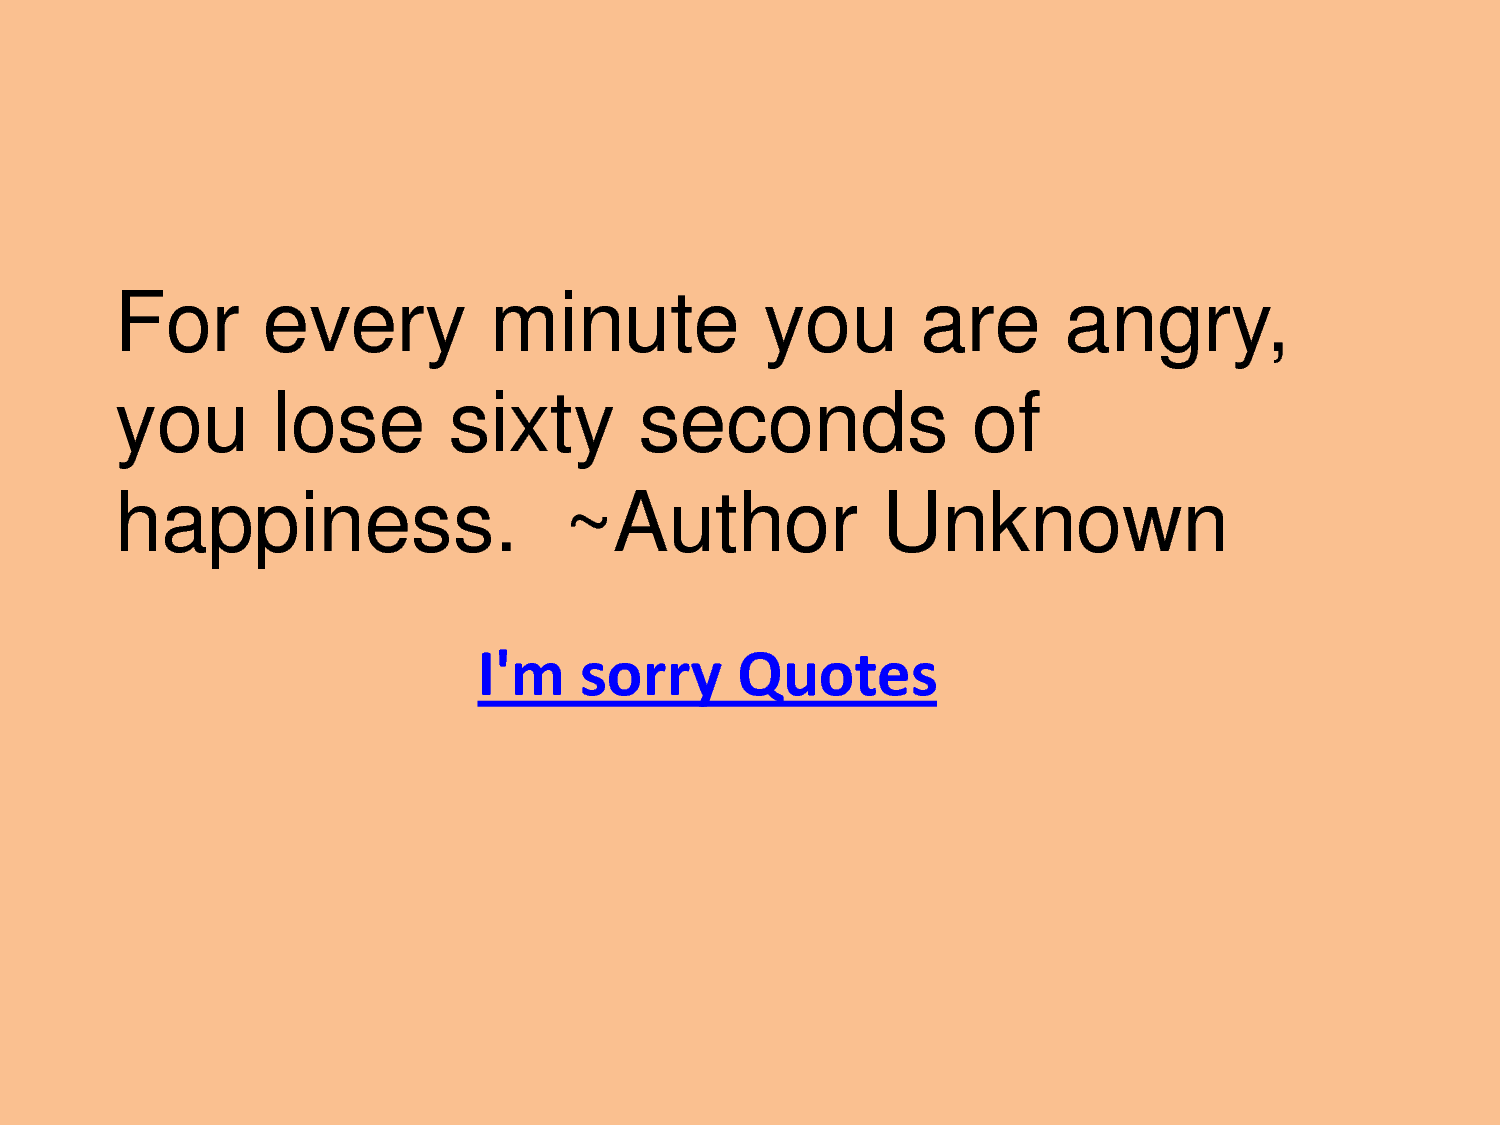 Quotes Life Funny But True Tagalog Quotes About Happiness Tumblr And